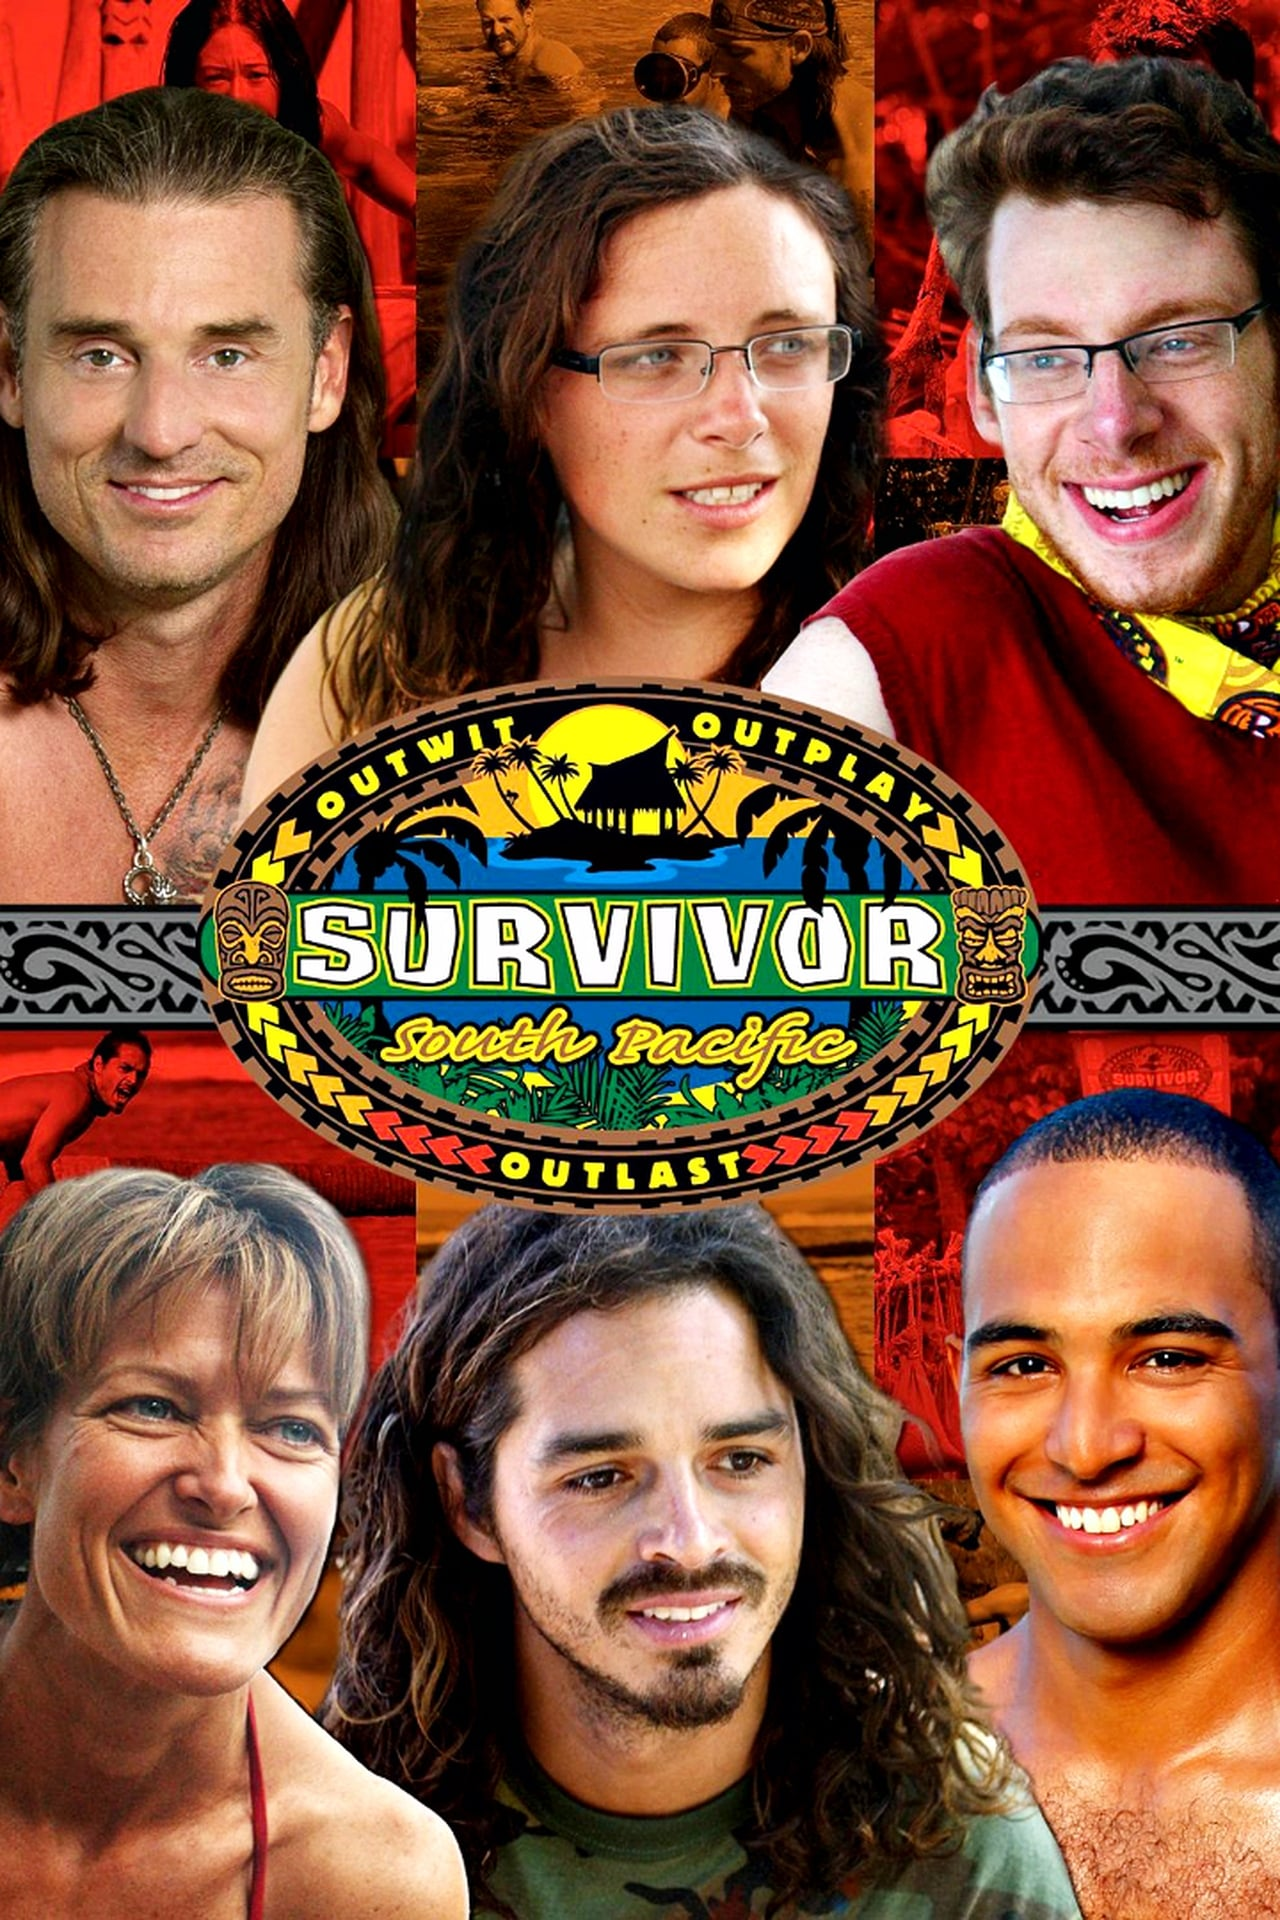 Survivor Season 23 (2011) putlockers cafe